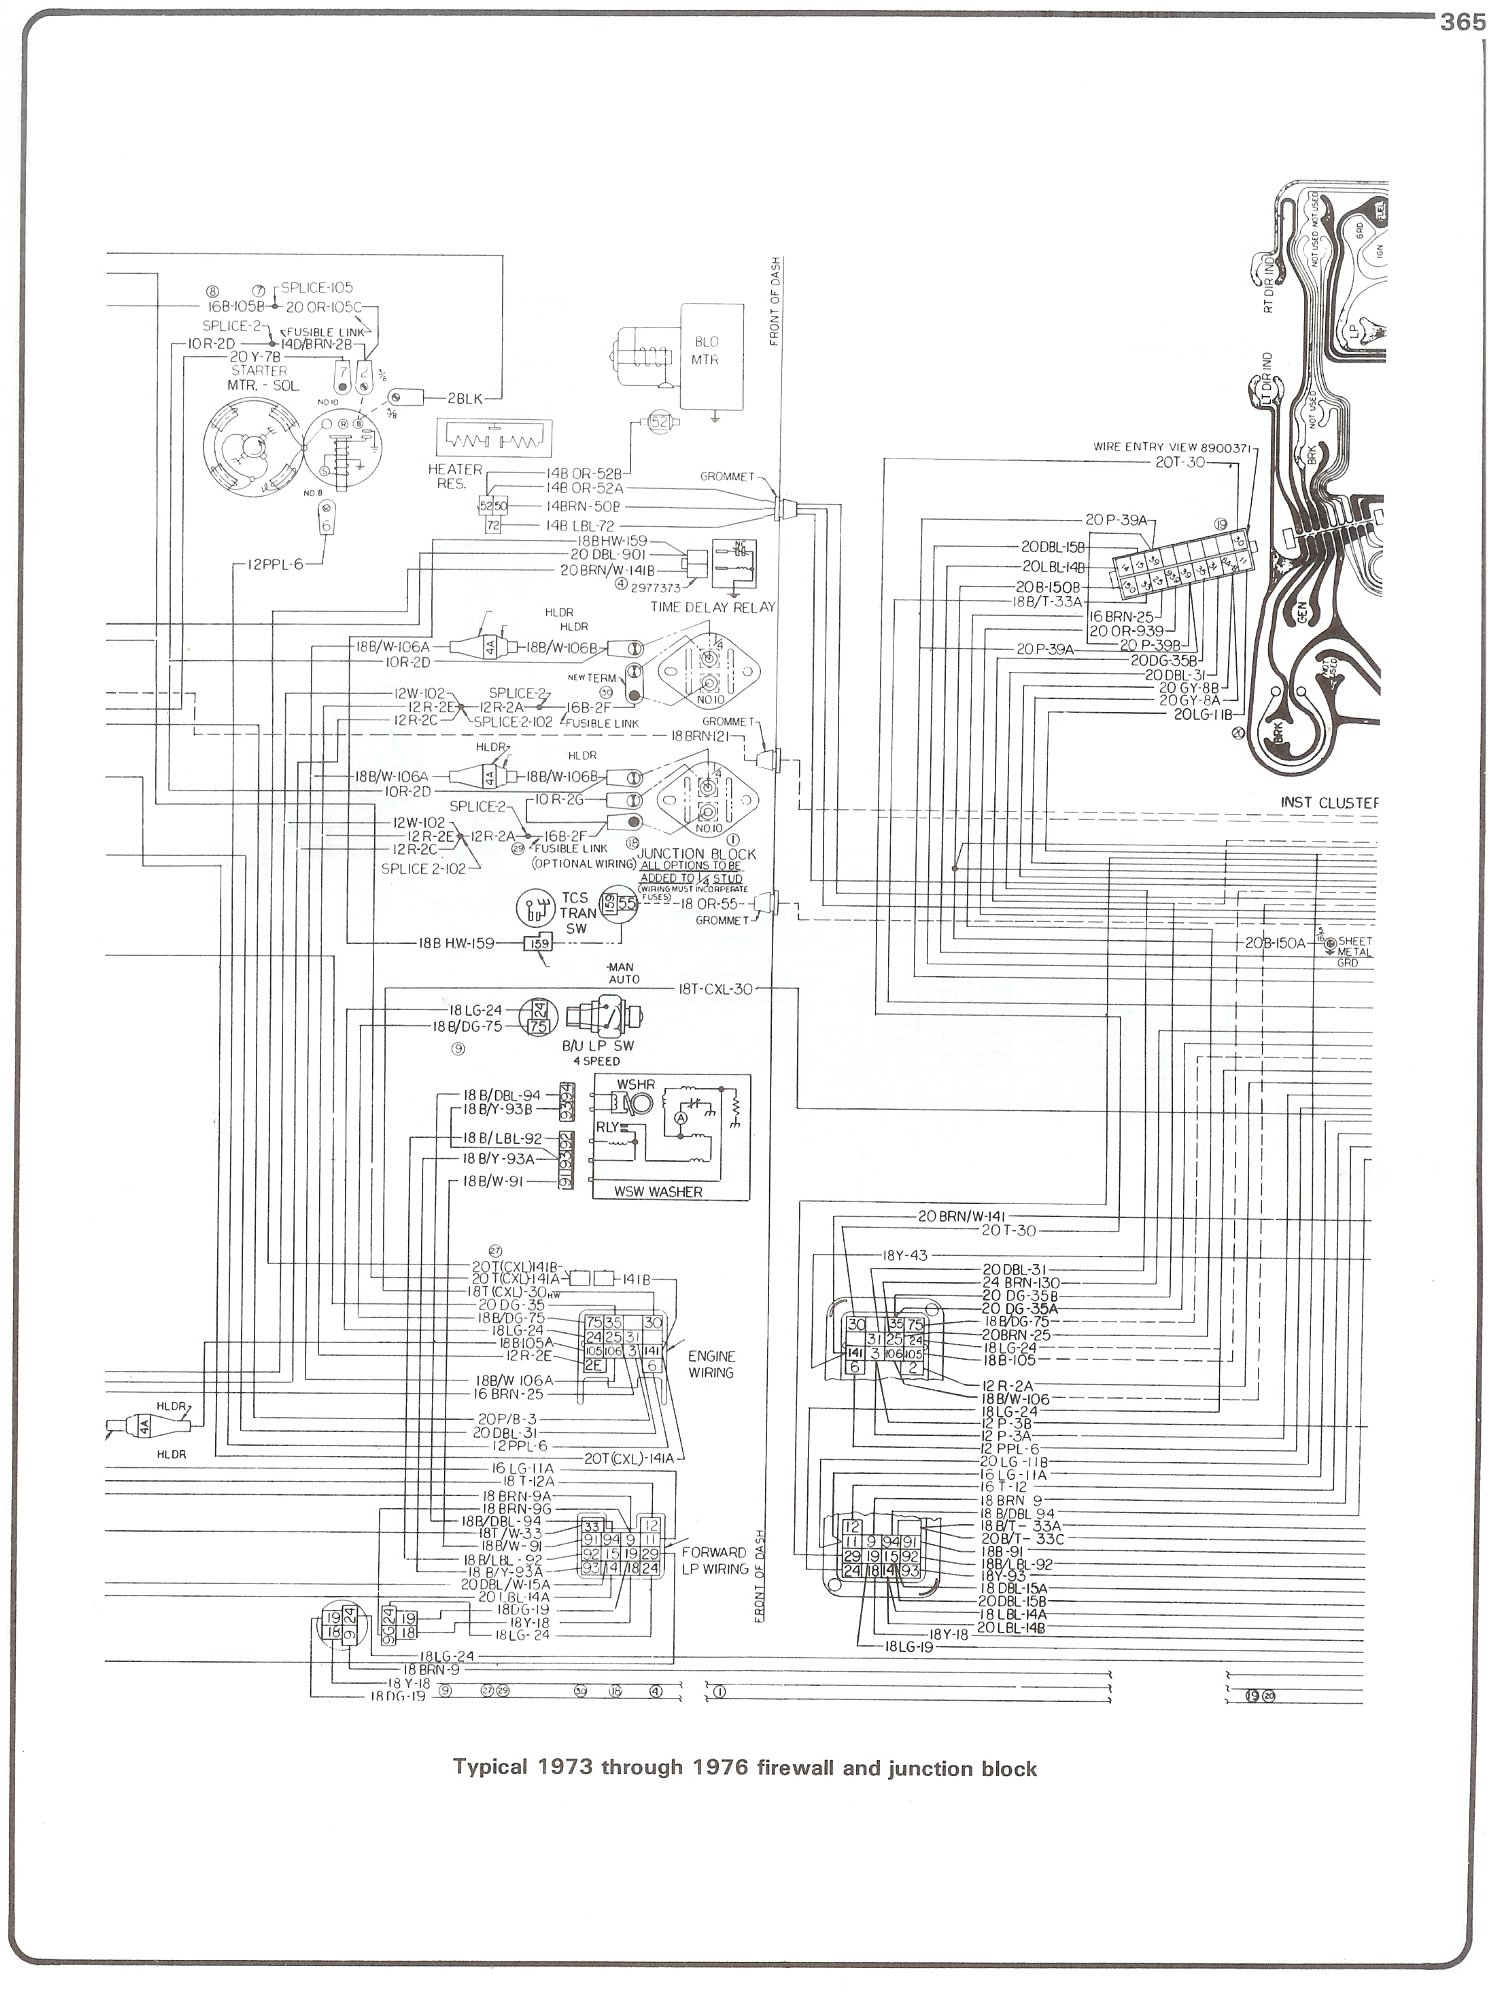 [WRG-1669] 1997 Gmc Jimmy Ignition Wiring Diagram